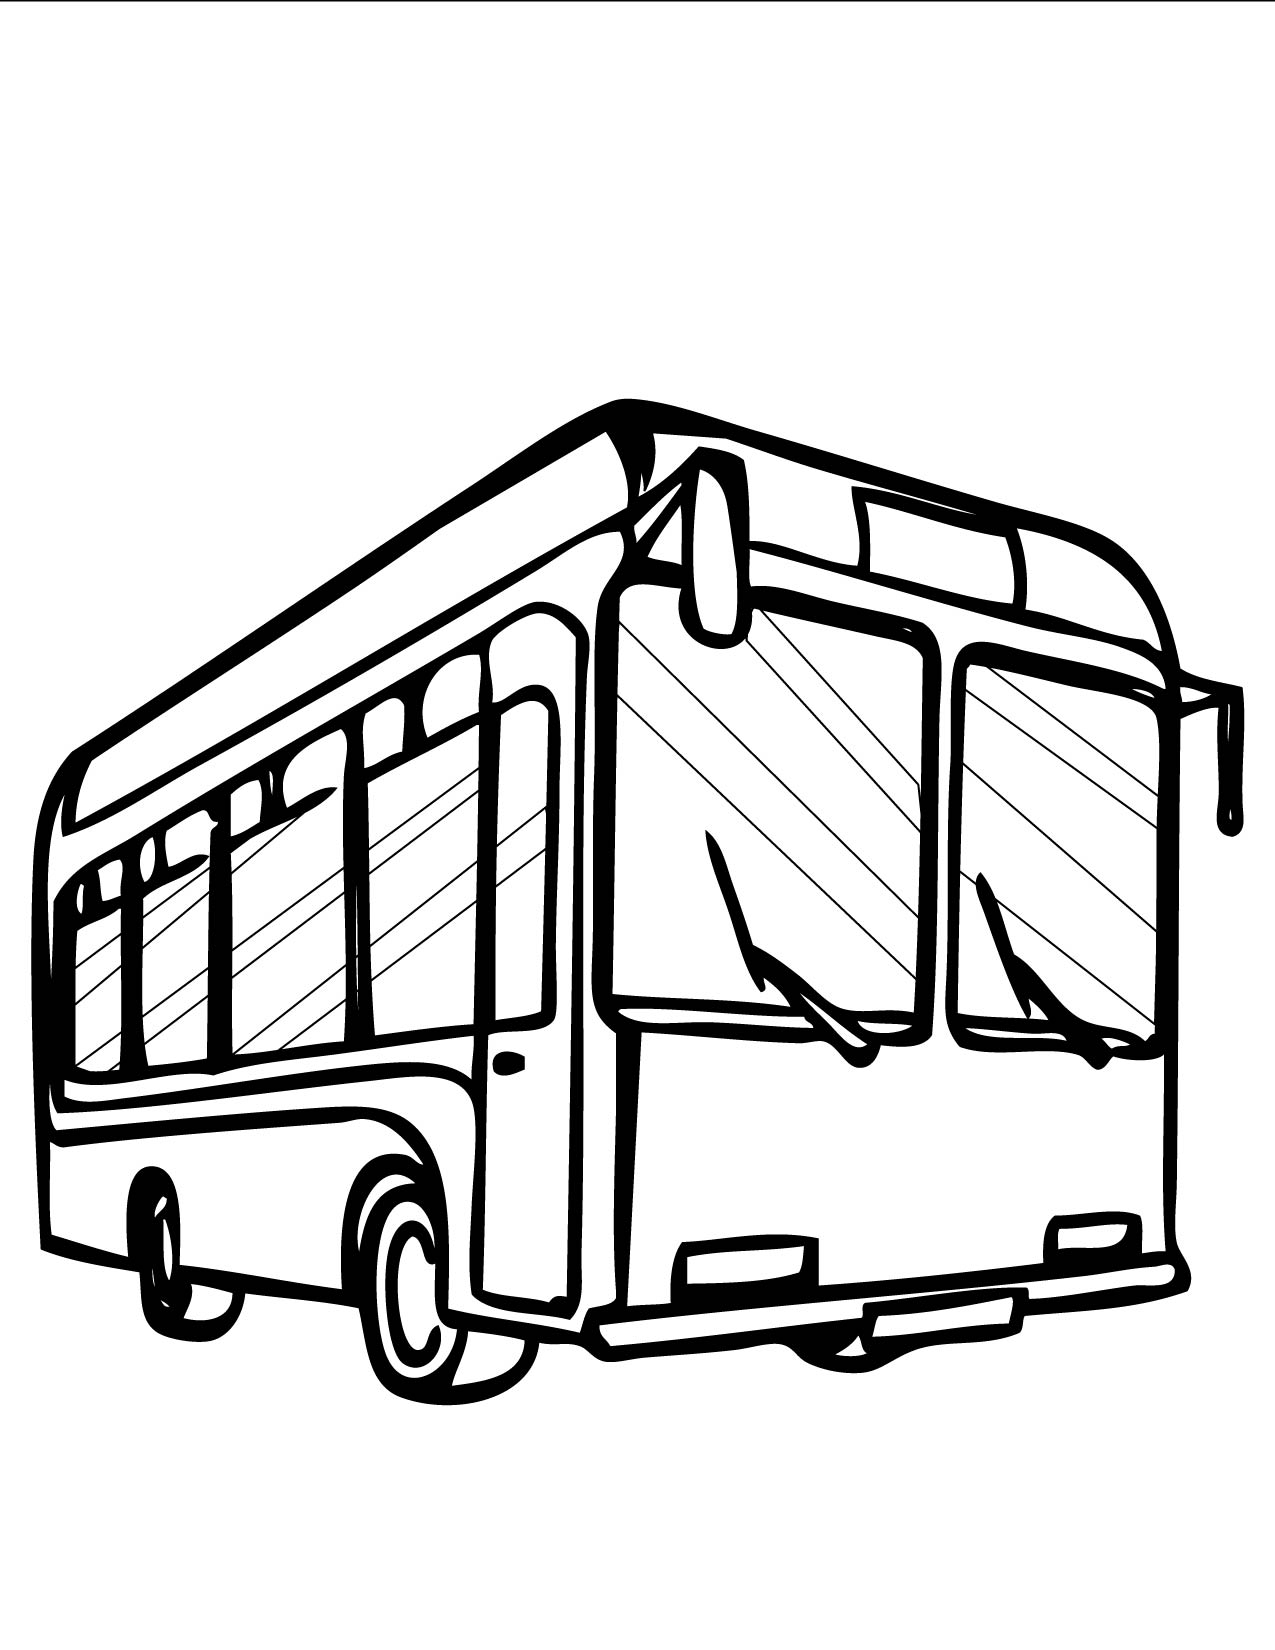 coloring pages bus - photo#26